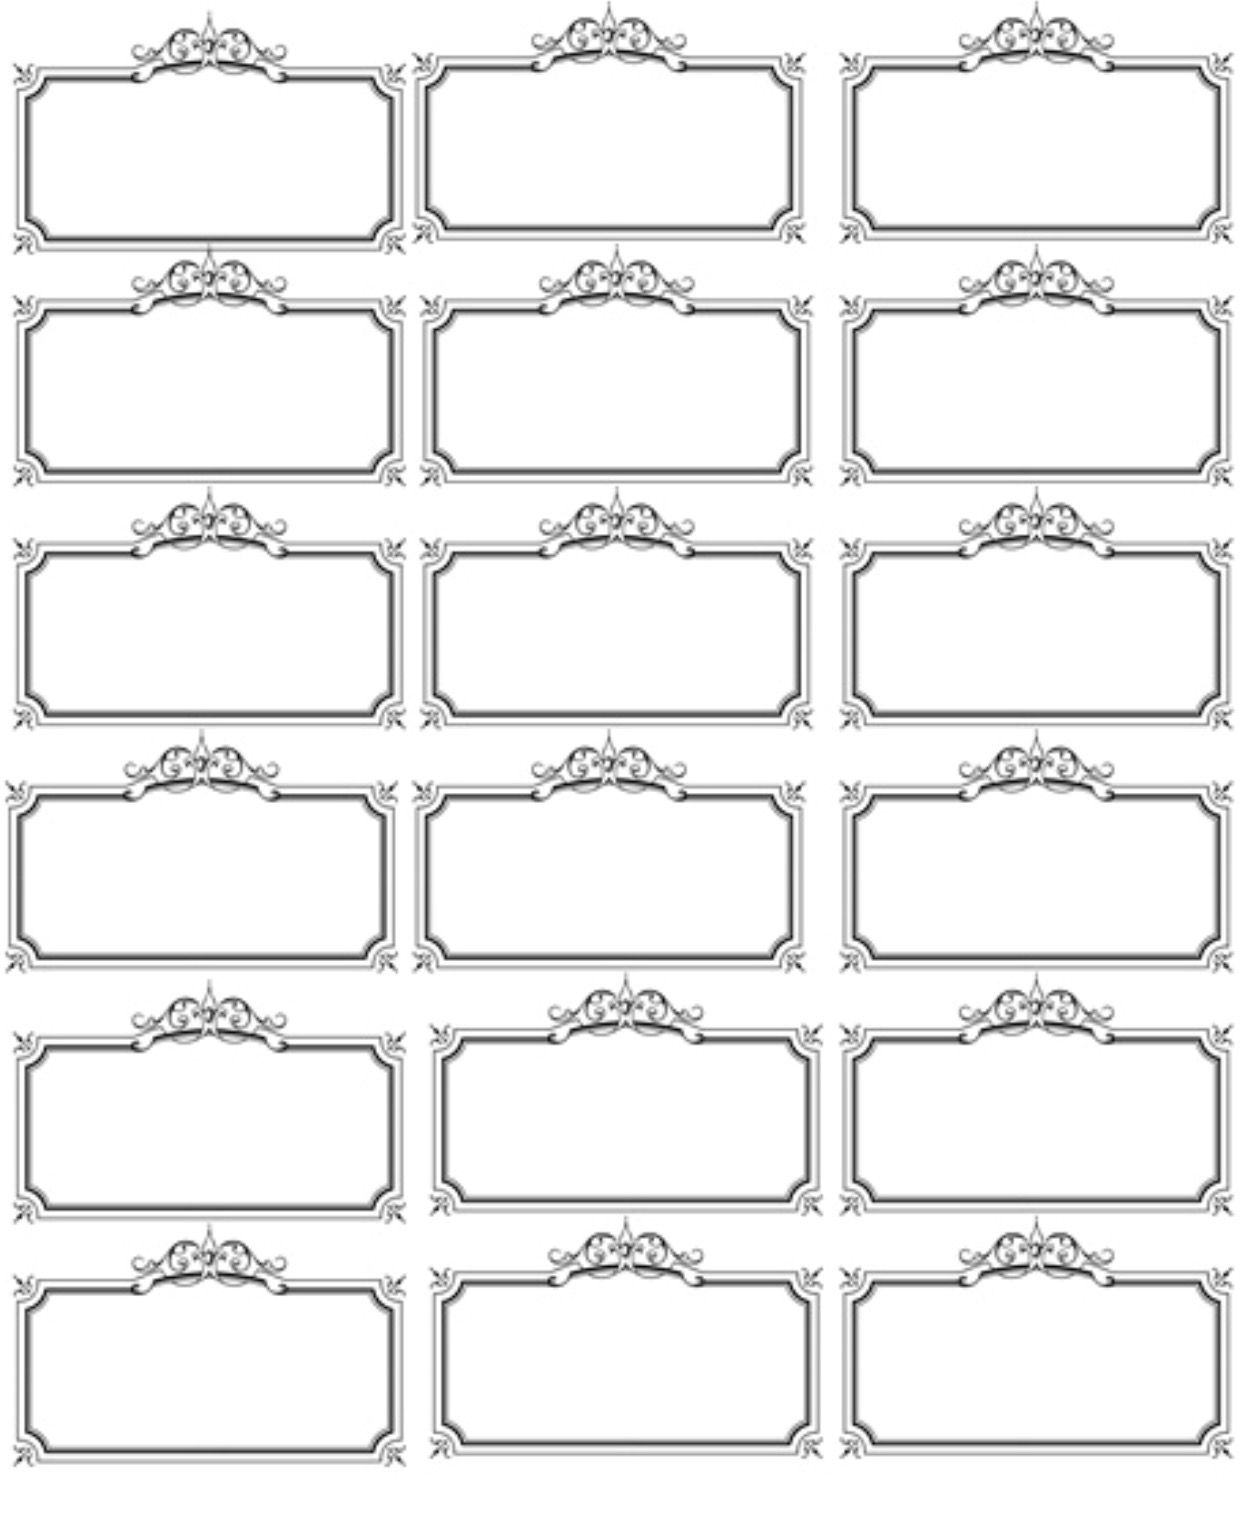 Templates Printable Name Tags: Pin By Dears Nov On Labels